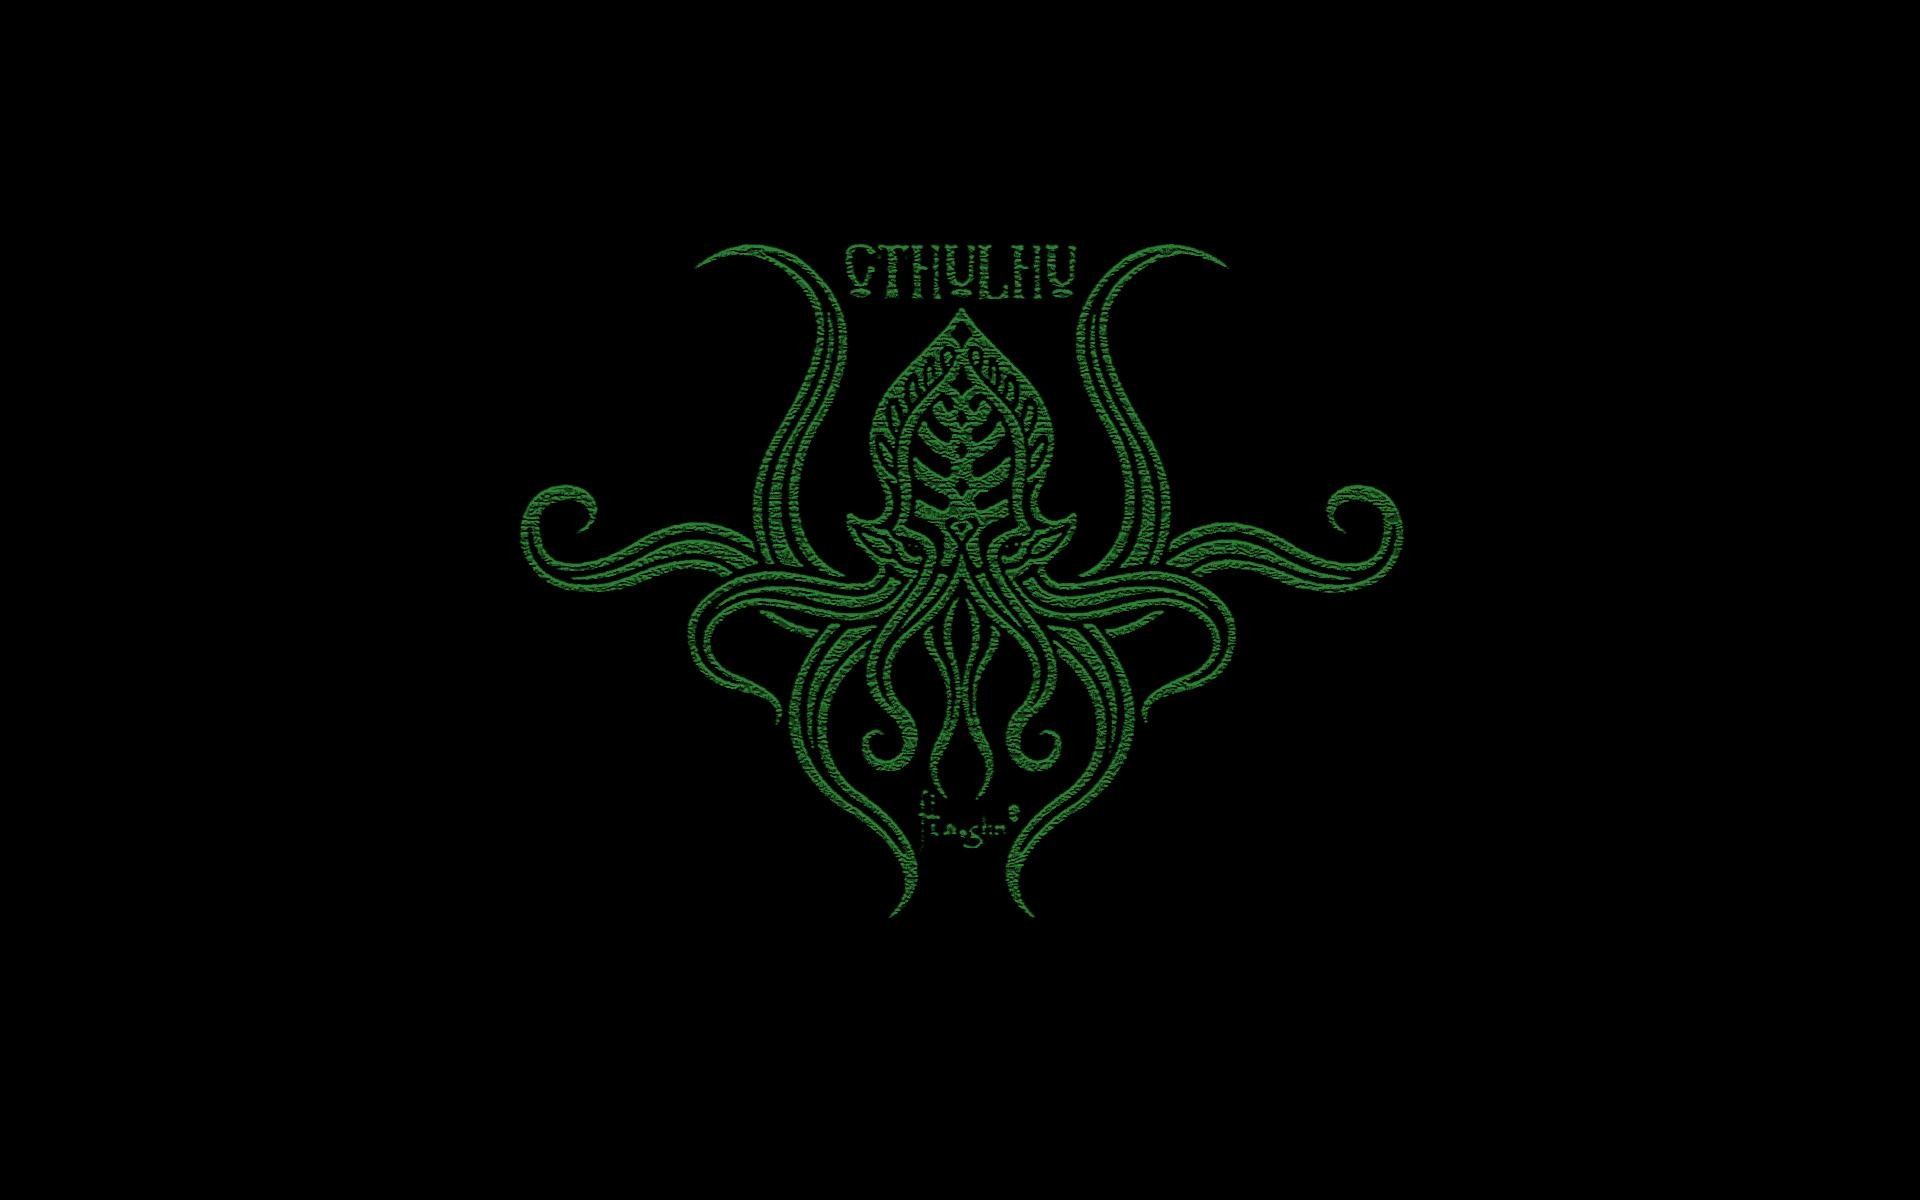 wallpaper.wiki-Free-Download-Cthulhu-Picture-PIC-WPE0010893